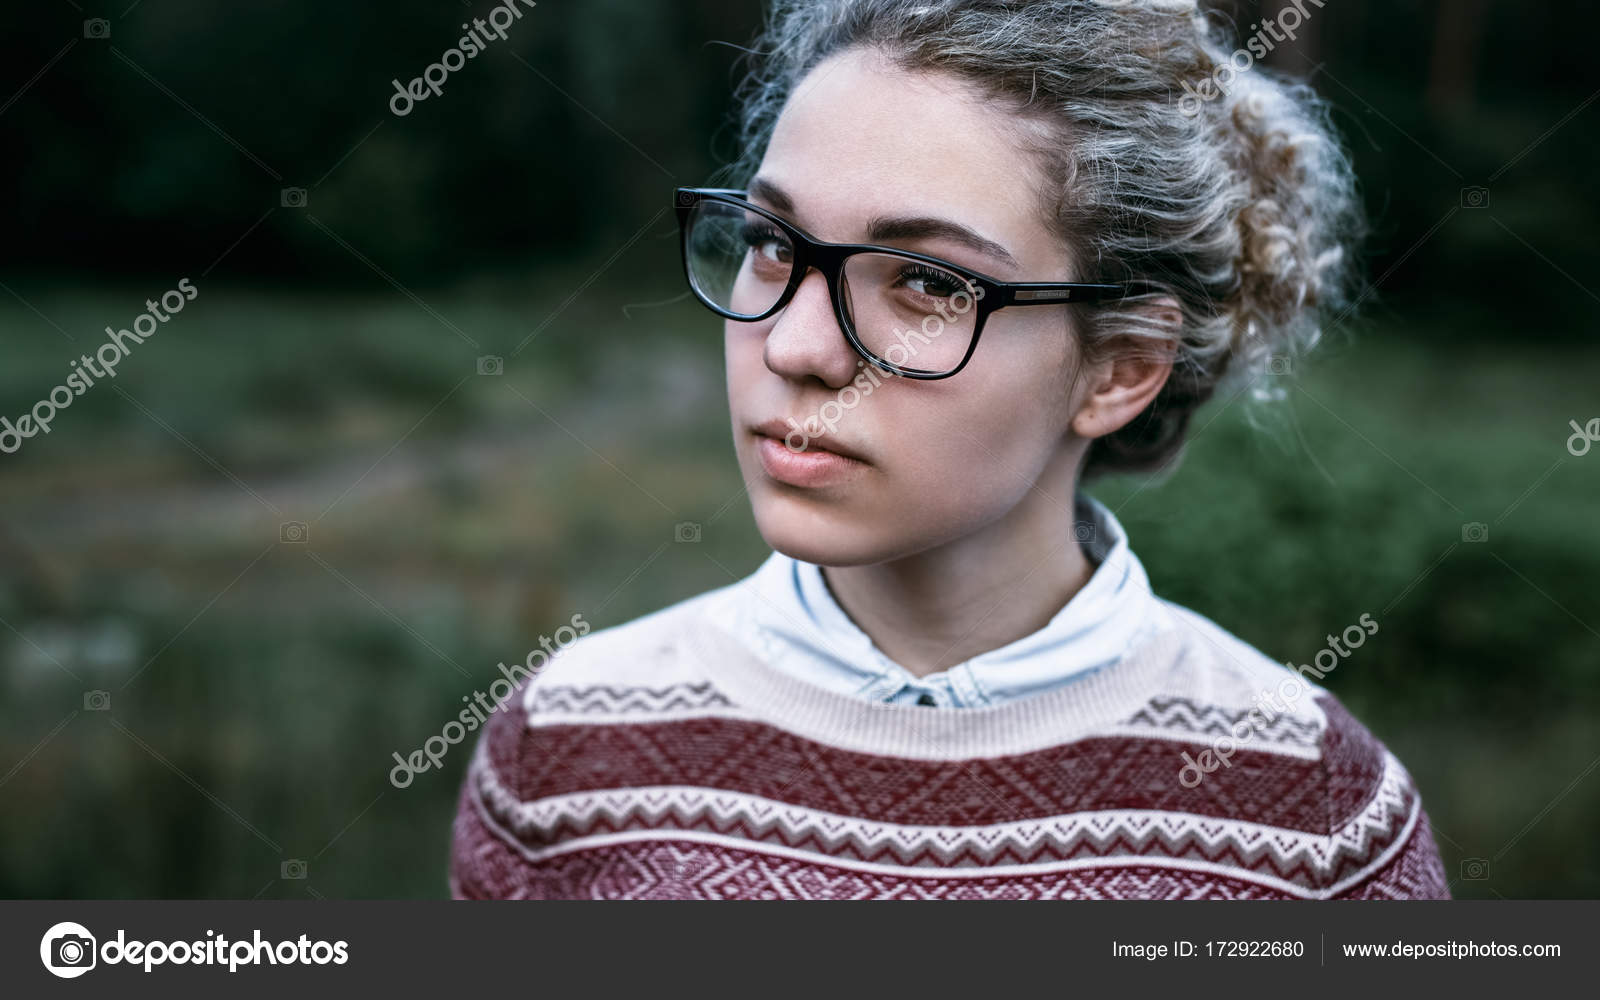 Cute Girl Blonde With Curly Hair Brown Eyes Wearing A Sweater